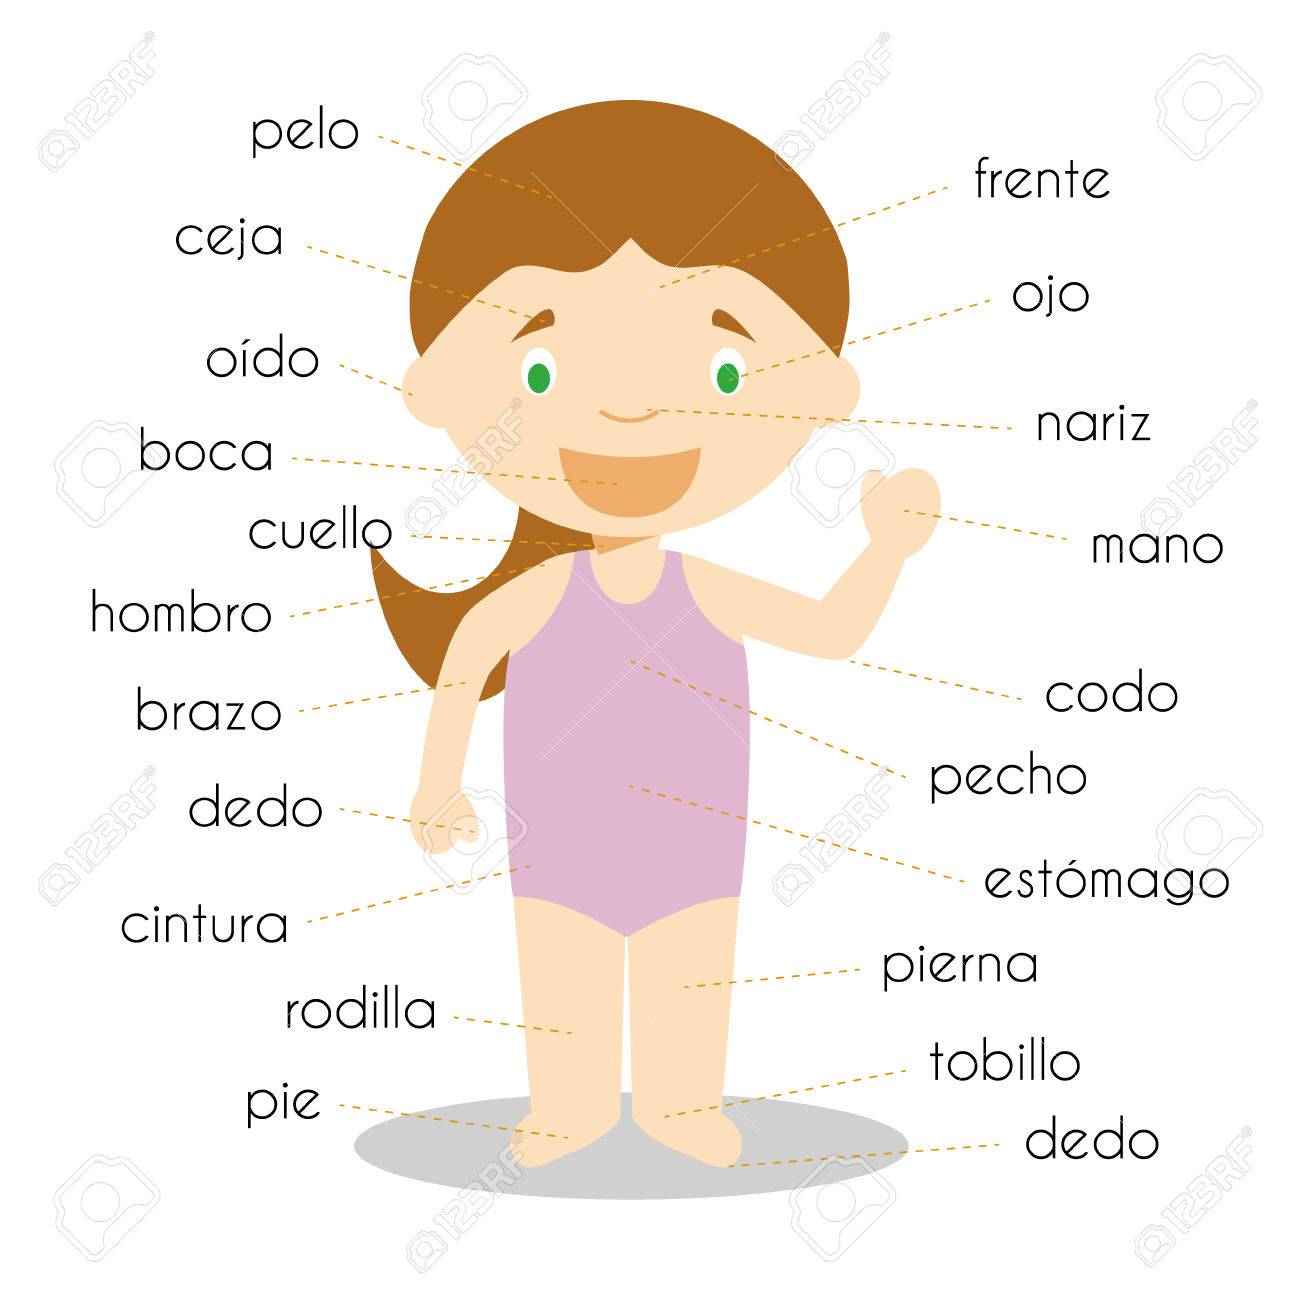 Human body parts vocabulary in spanish vector illustration royalty human body parts vocabulary in spanish vector illustration imagens 74337148 ccuart Image collections